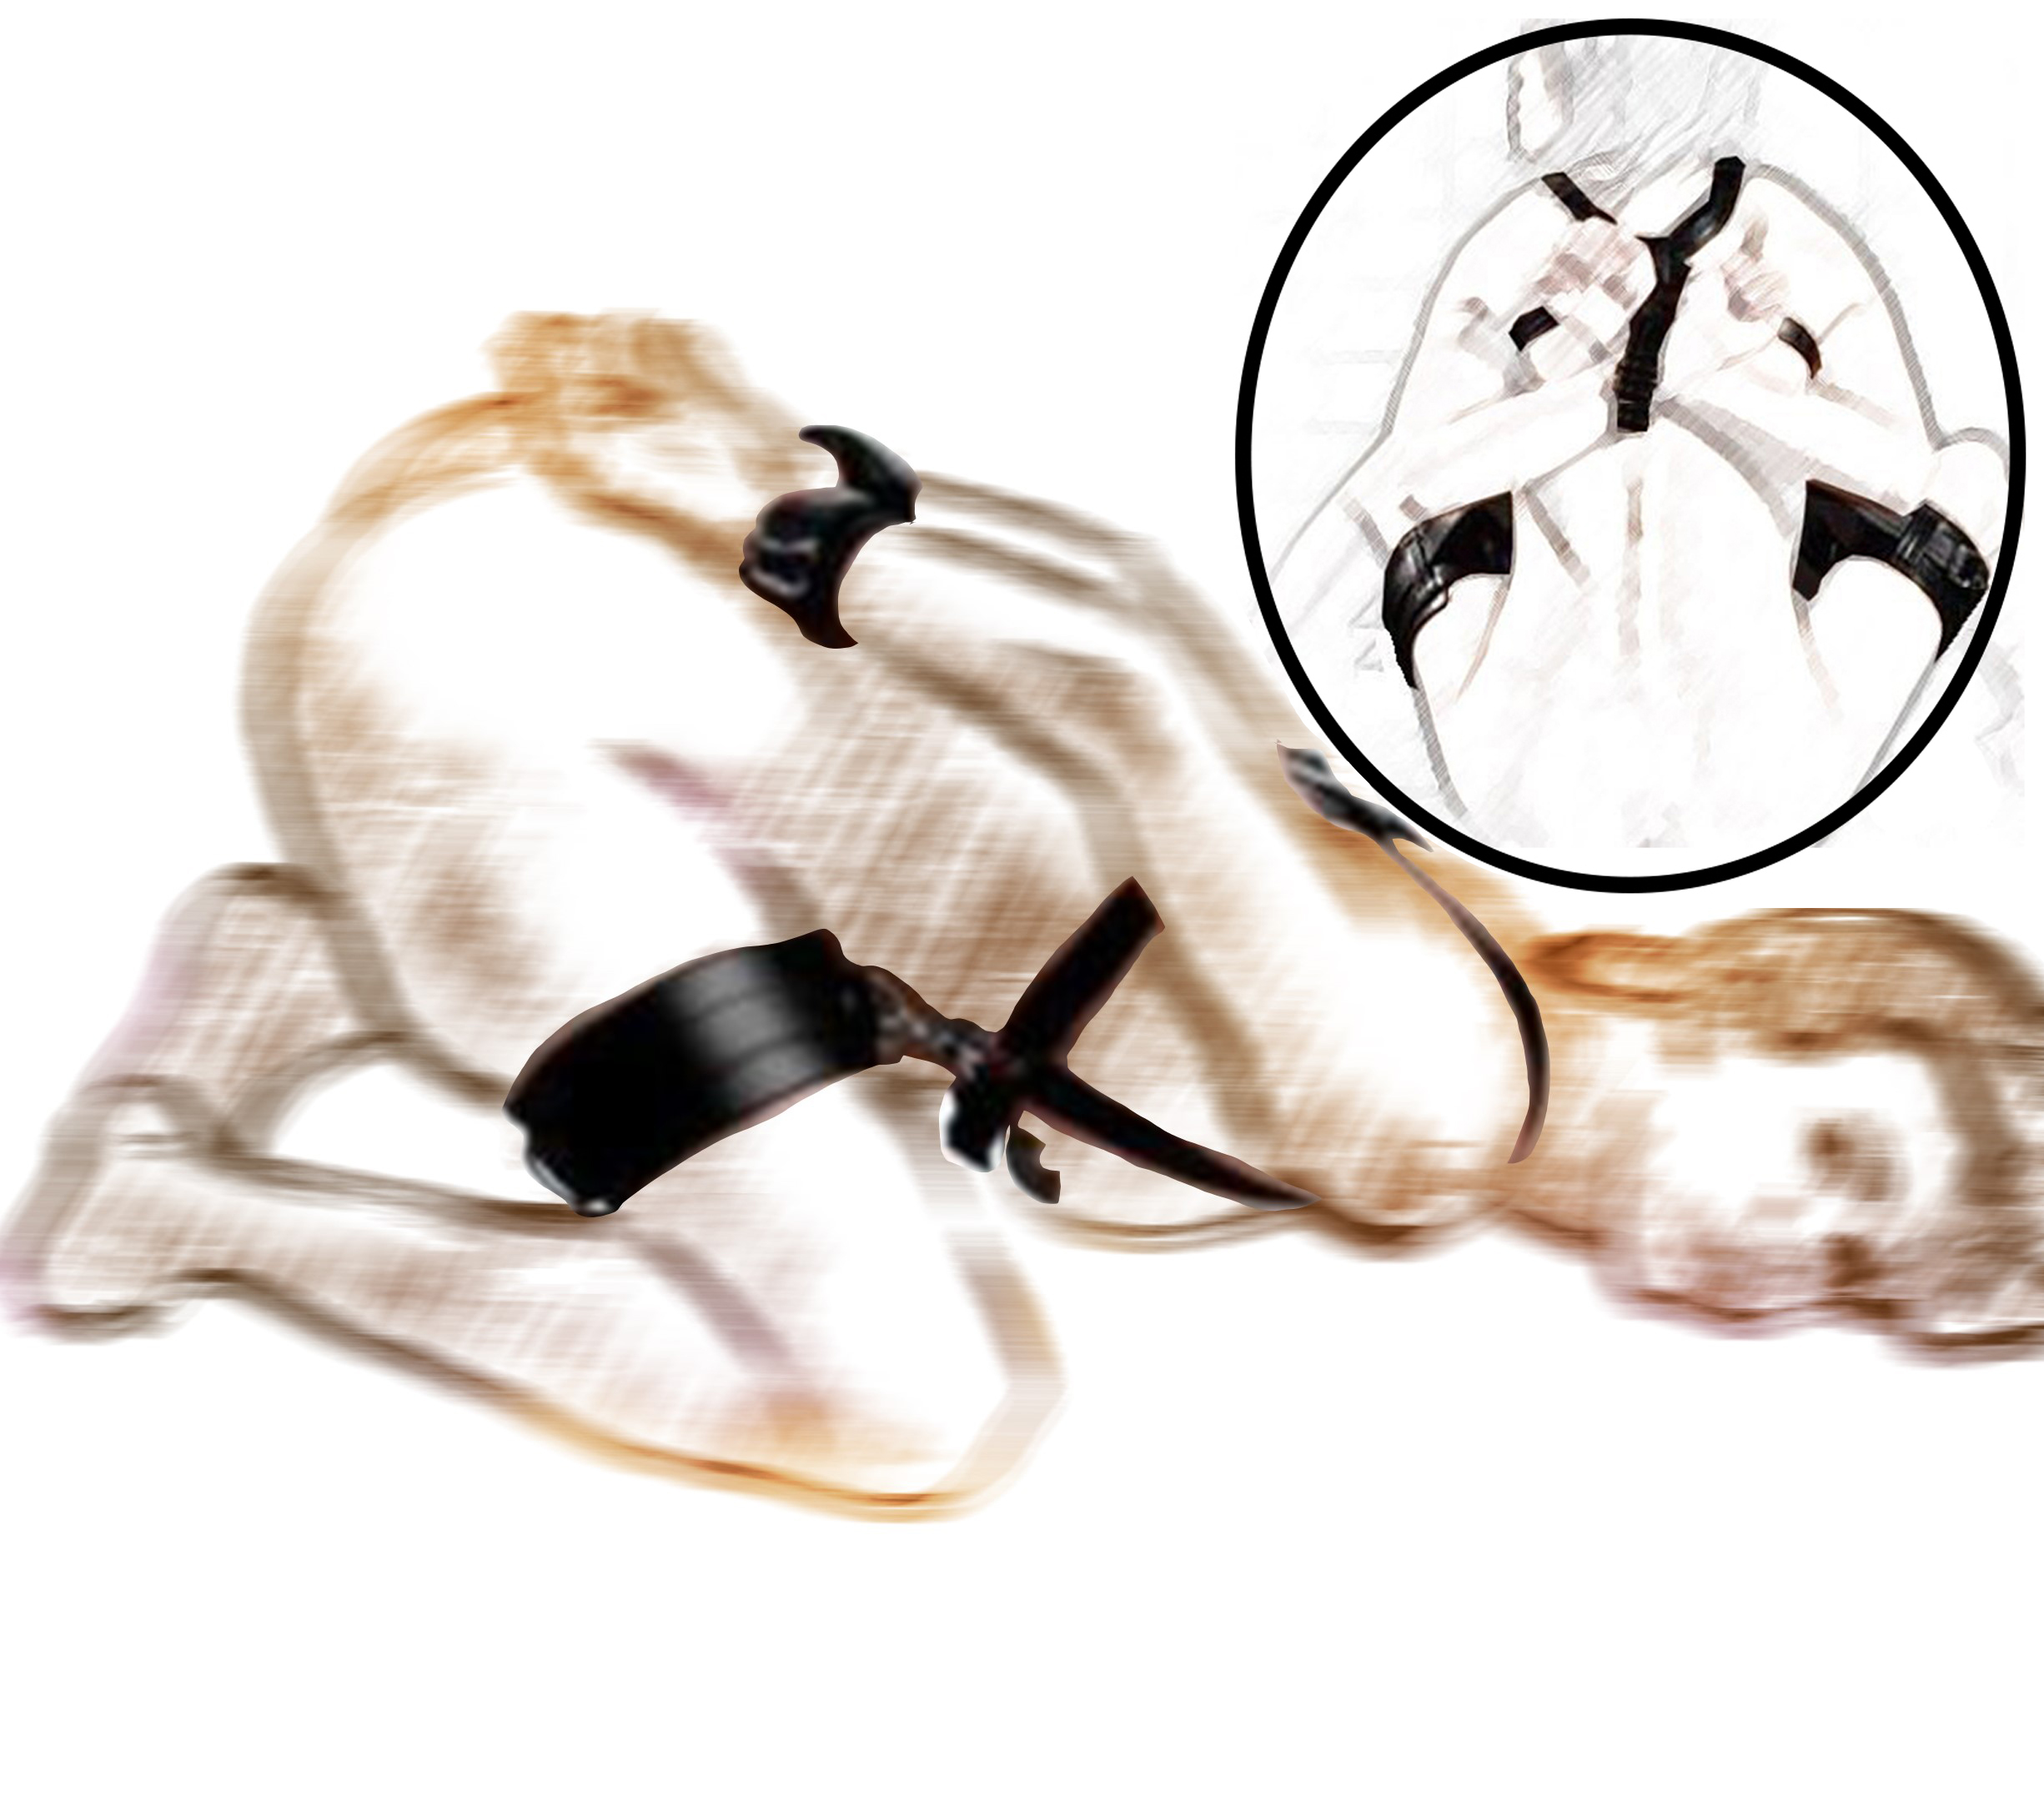 Thigh Restraint Sling Spreader,Leg Open Restraint Bondage Harness With Wrist Cuffs,Sex Position Aid